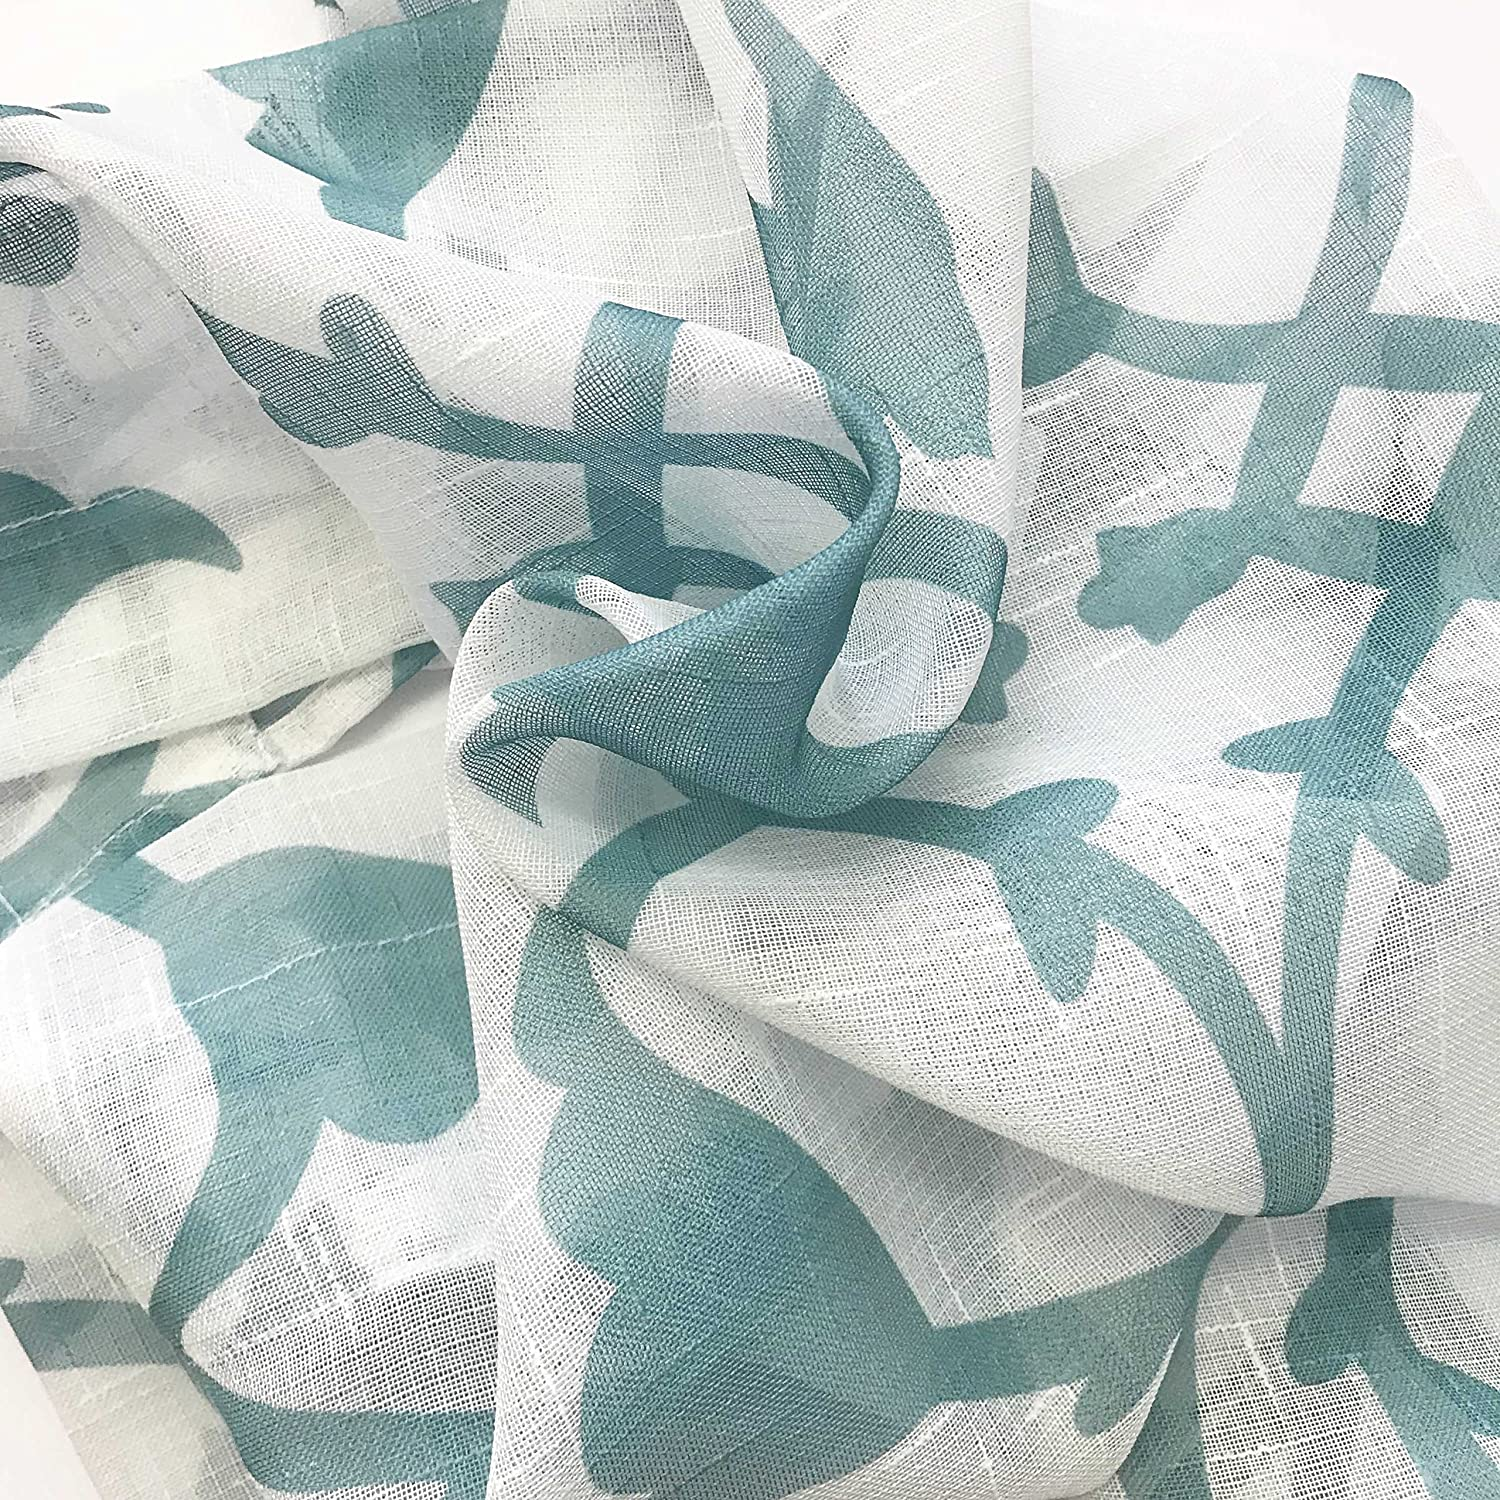 Flower /& Vine Design Shower Curtain 72 L Bathroom and More Collection SHEER Fabric Shower Curtain White with Blue Bird